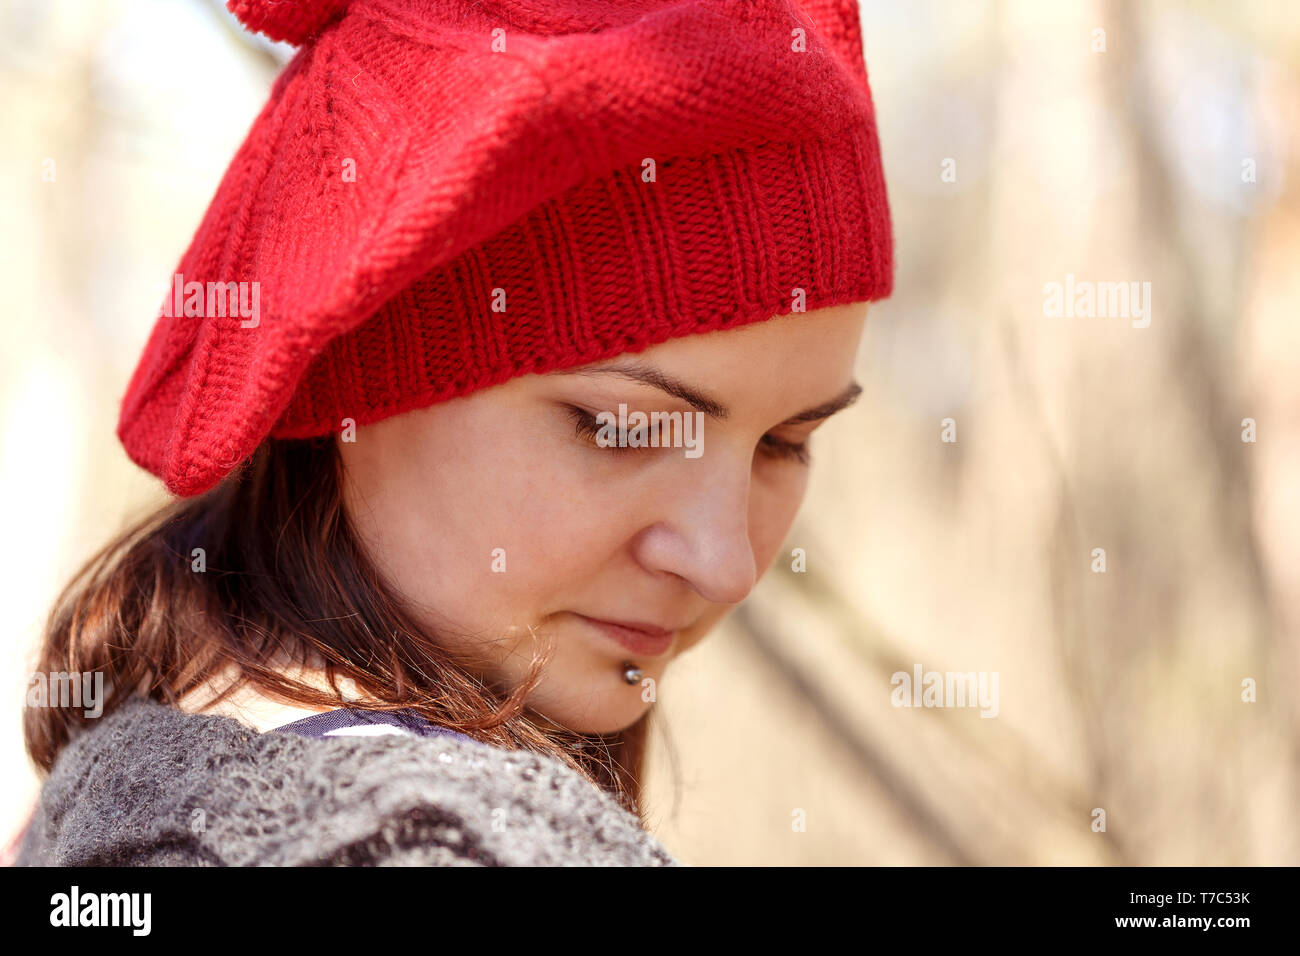 80c02a44 Outdoor close up portrait of young beautiful happy smiling girl wearing  french style red knitted beret